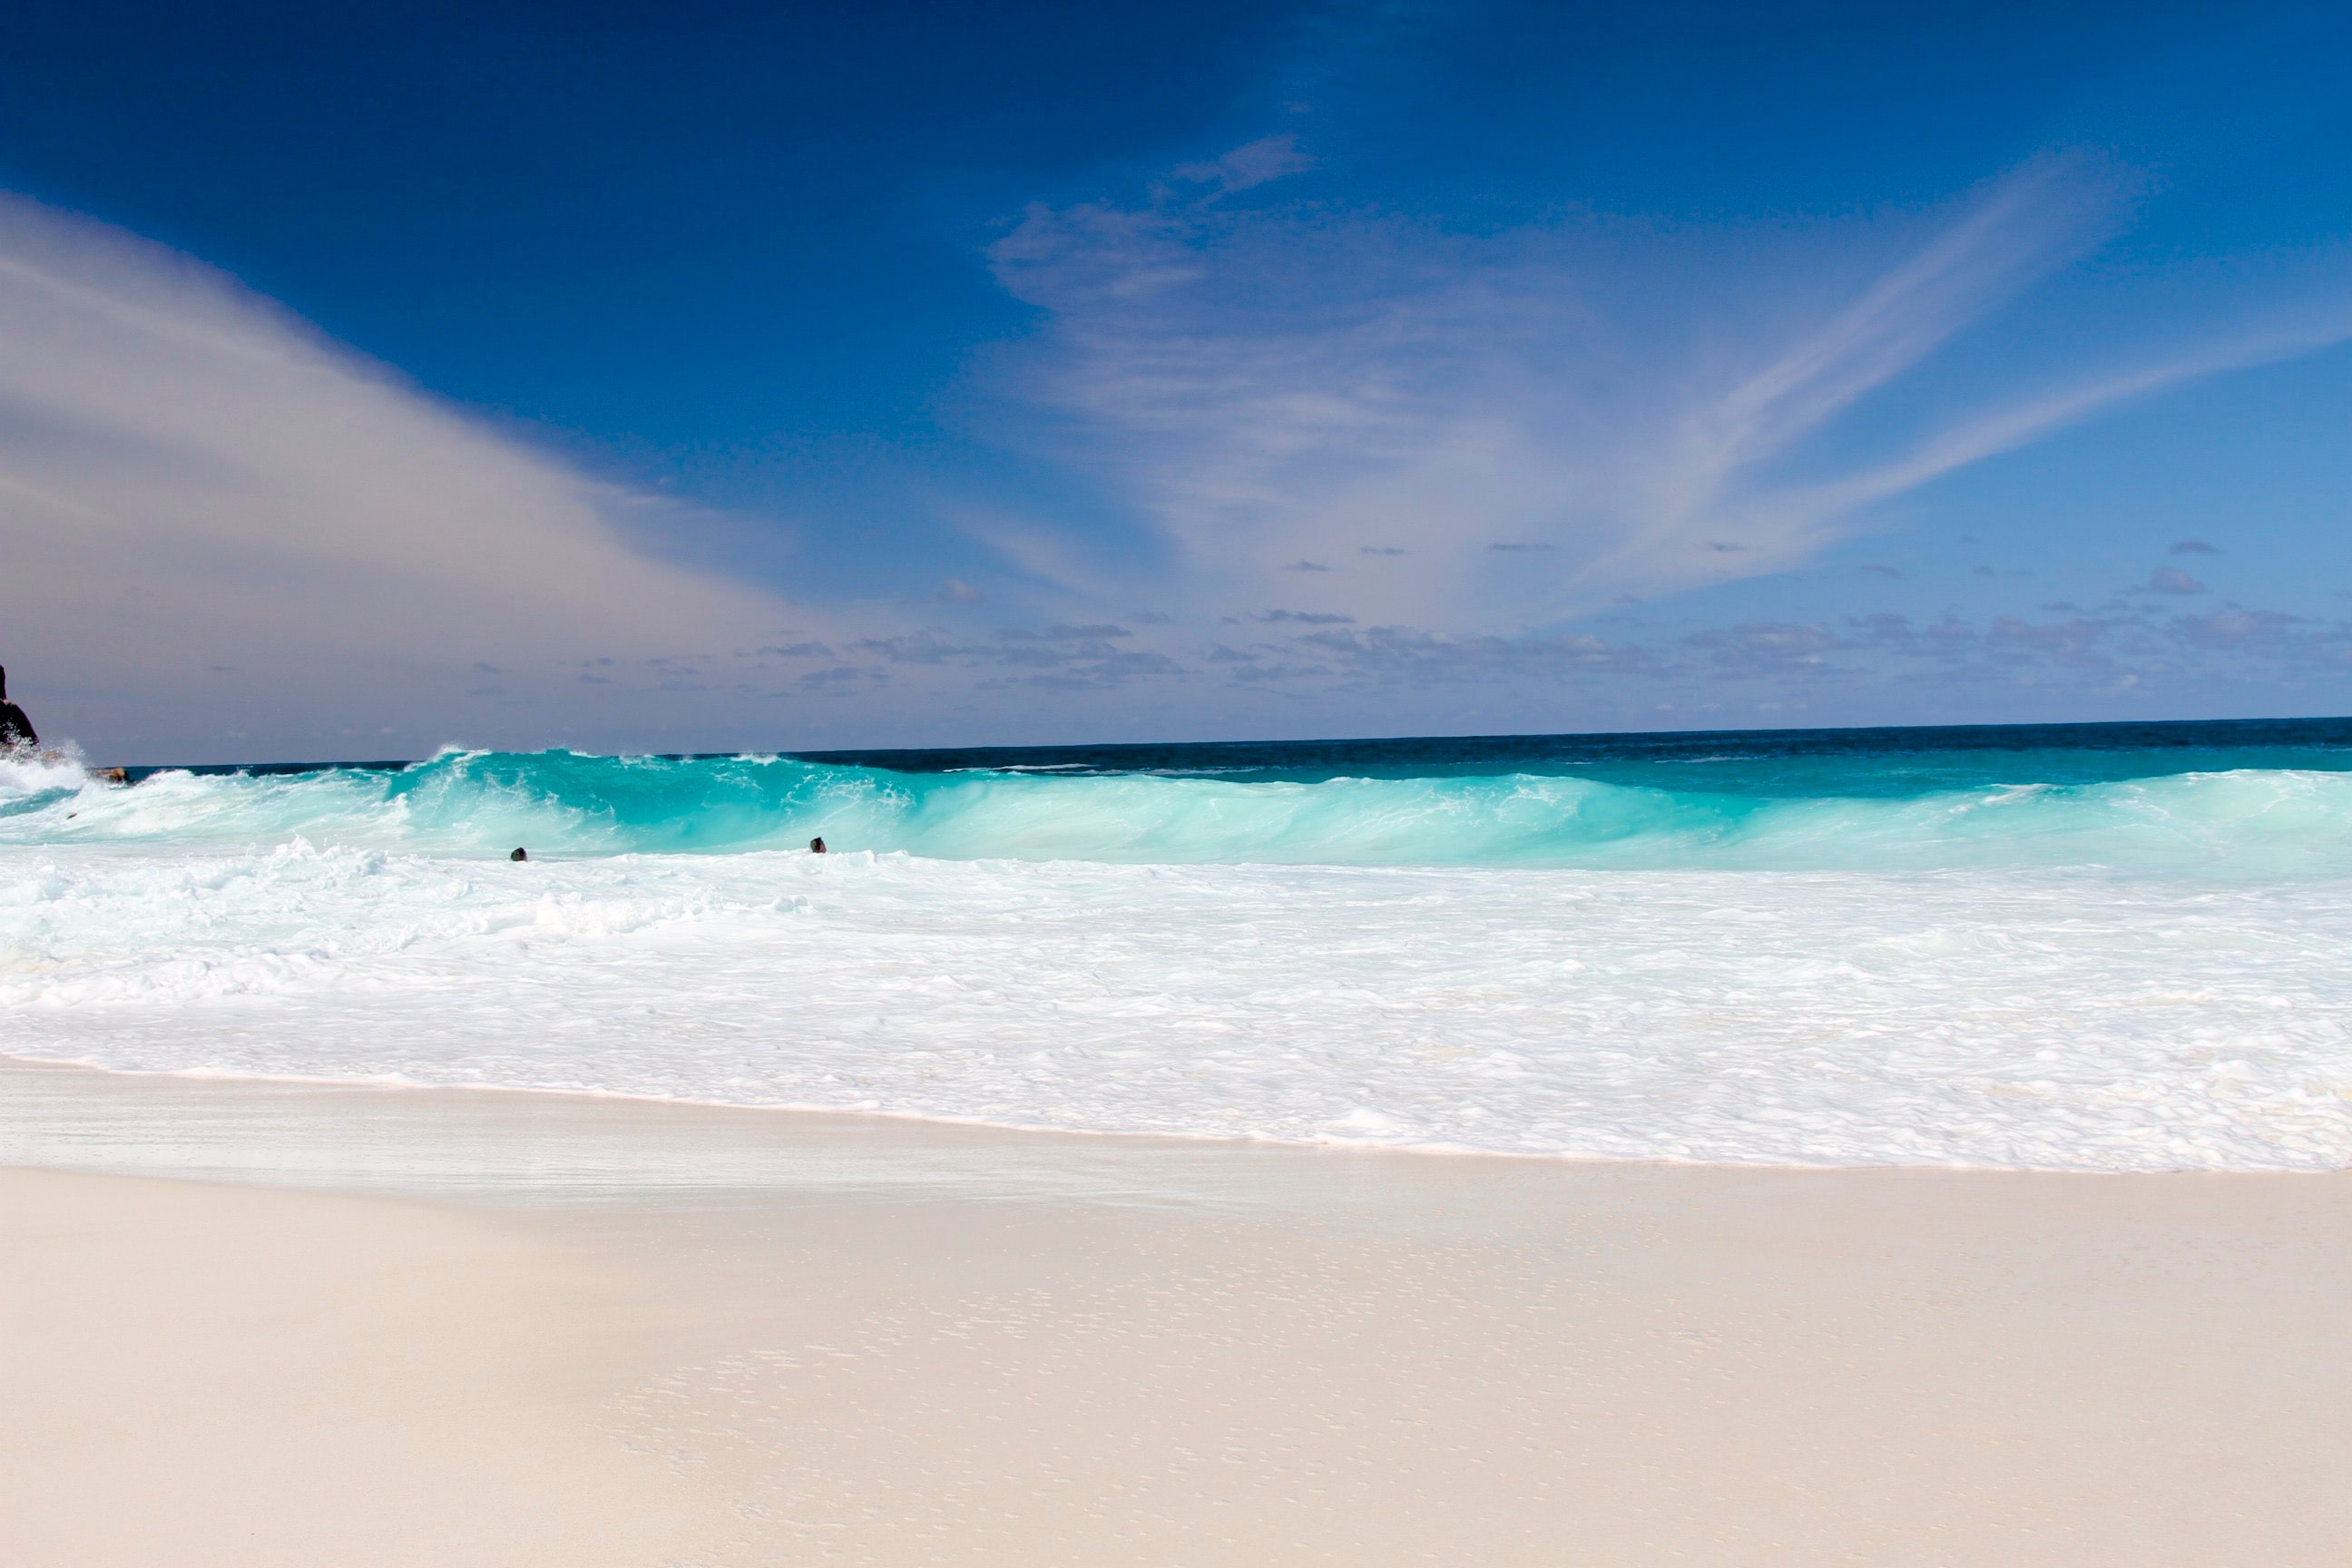 Blue ocean waves splashing on a tropical sand beach at Seychelles